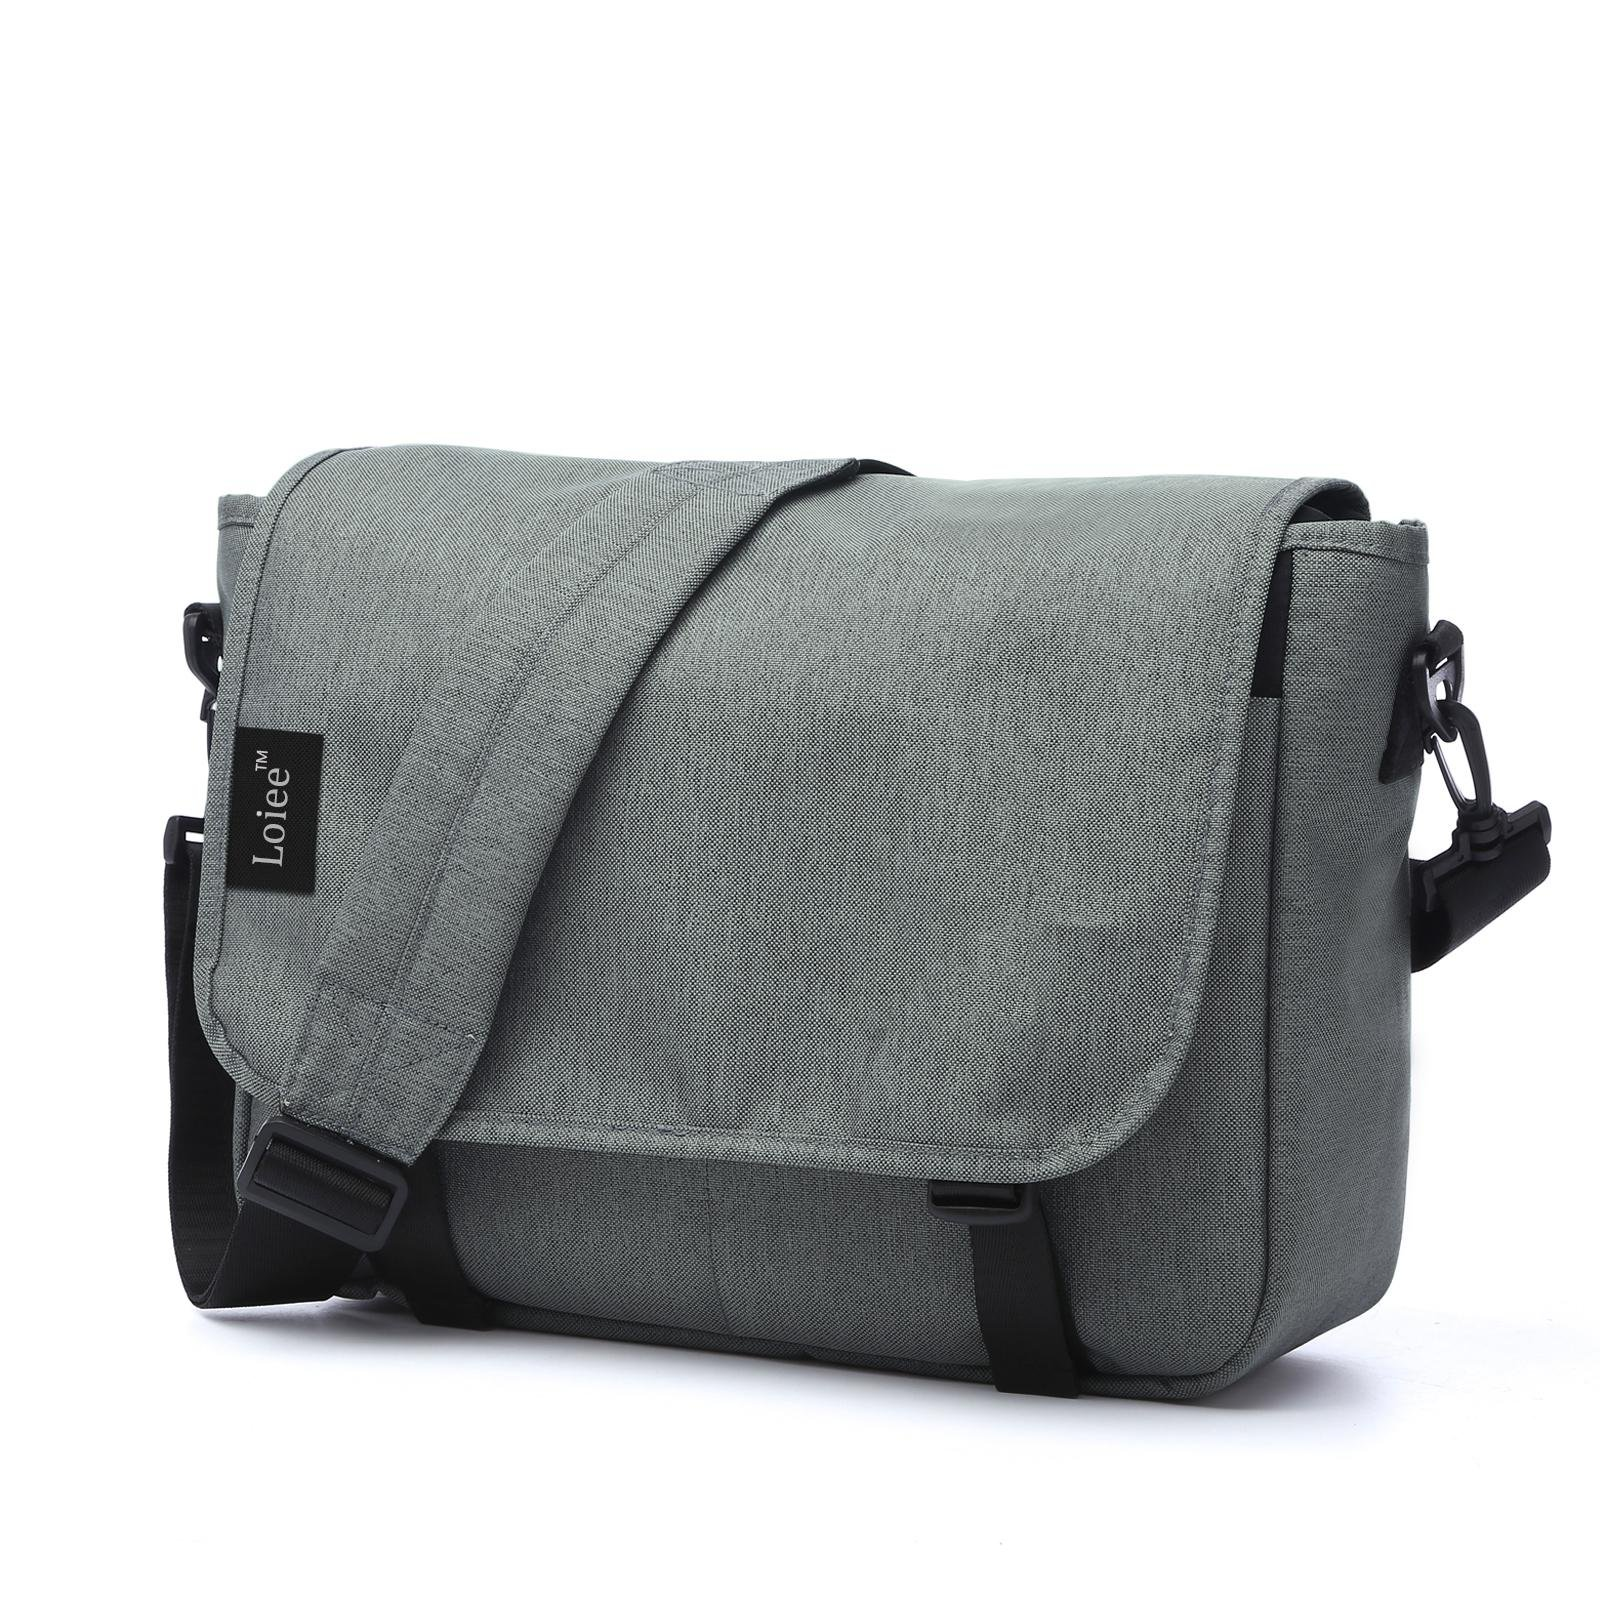 Loiee 14 inches Classic Canvas Messenger Bag,Water Resistant Vintage School Bag,Grey by Loiee (Image #1)